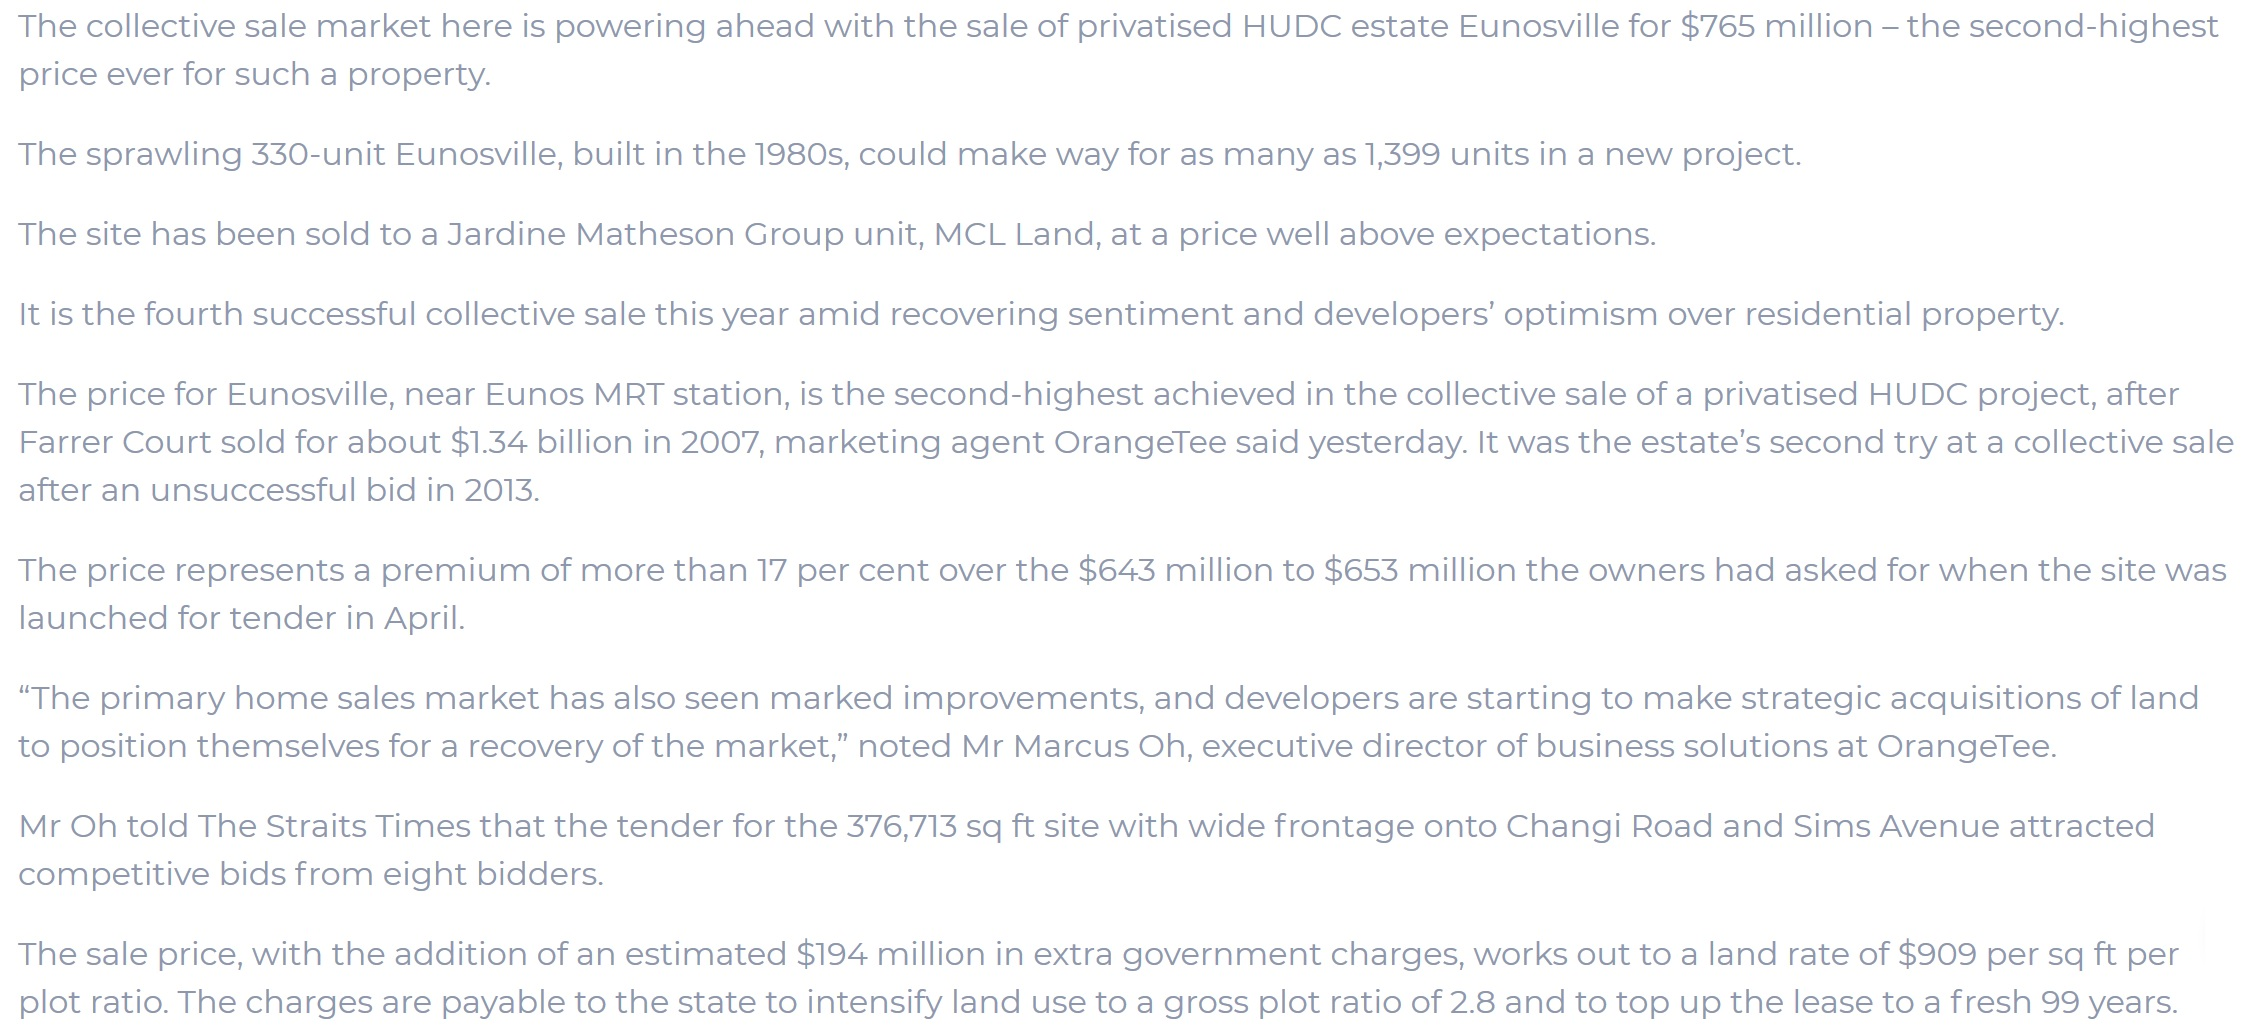 765m-en-bloc-sale-eunosville-may-make-way-for-1399-new-homes